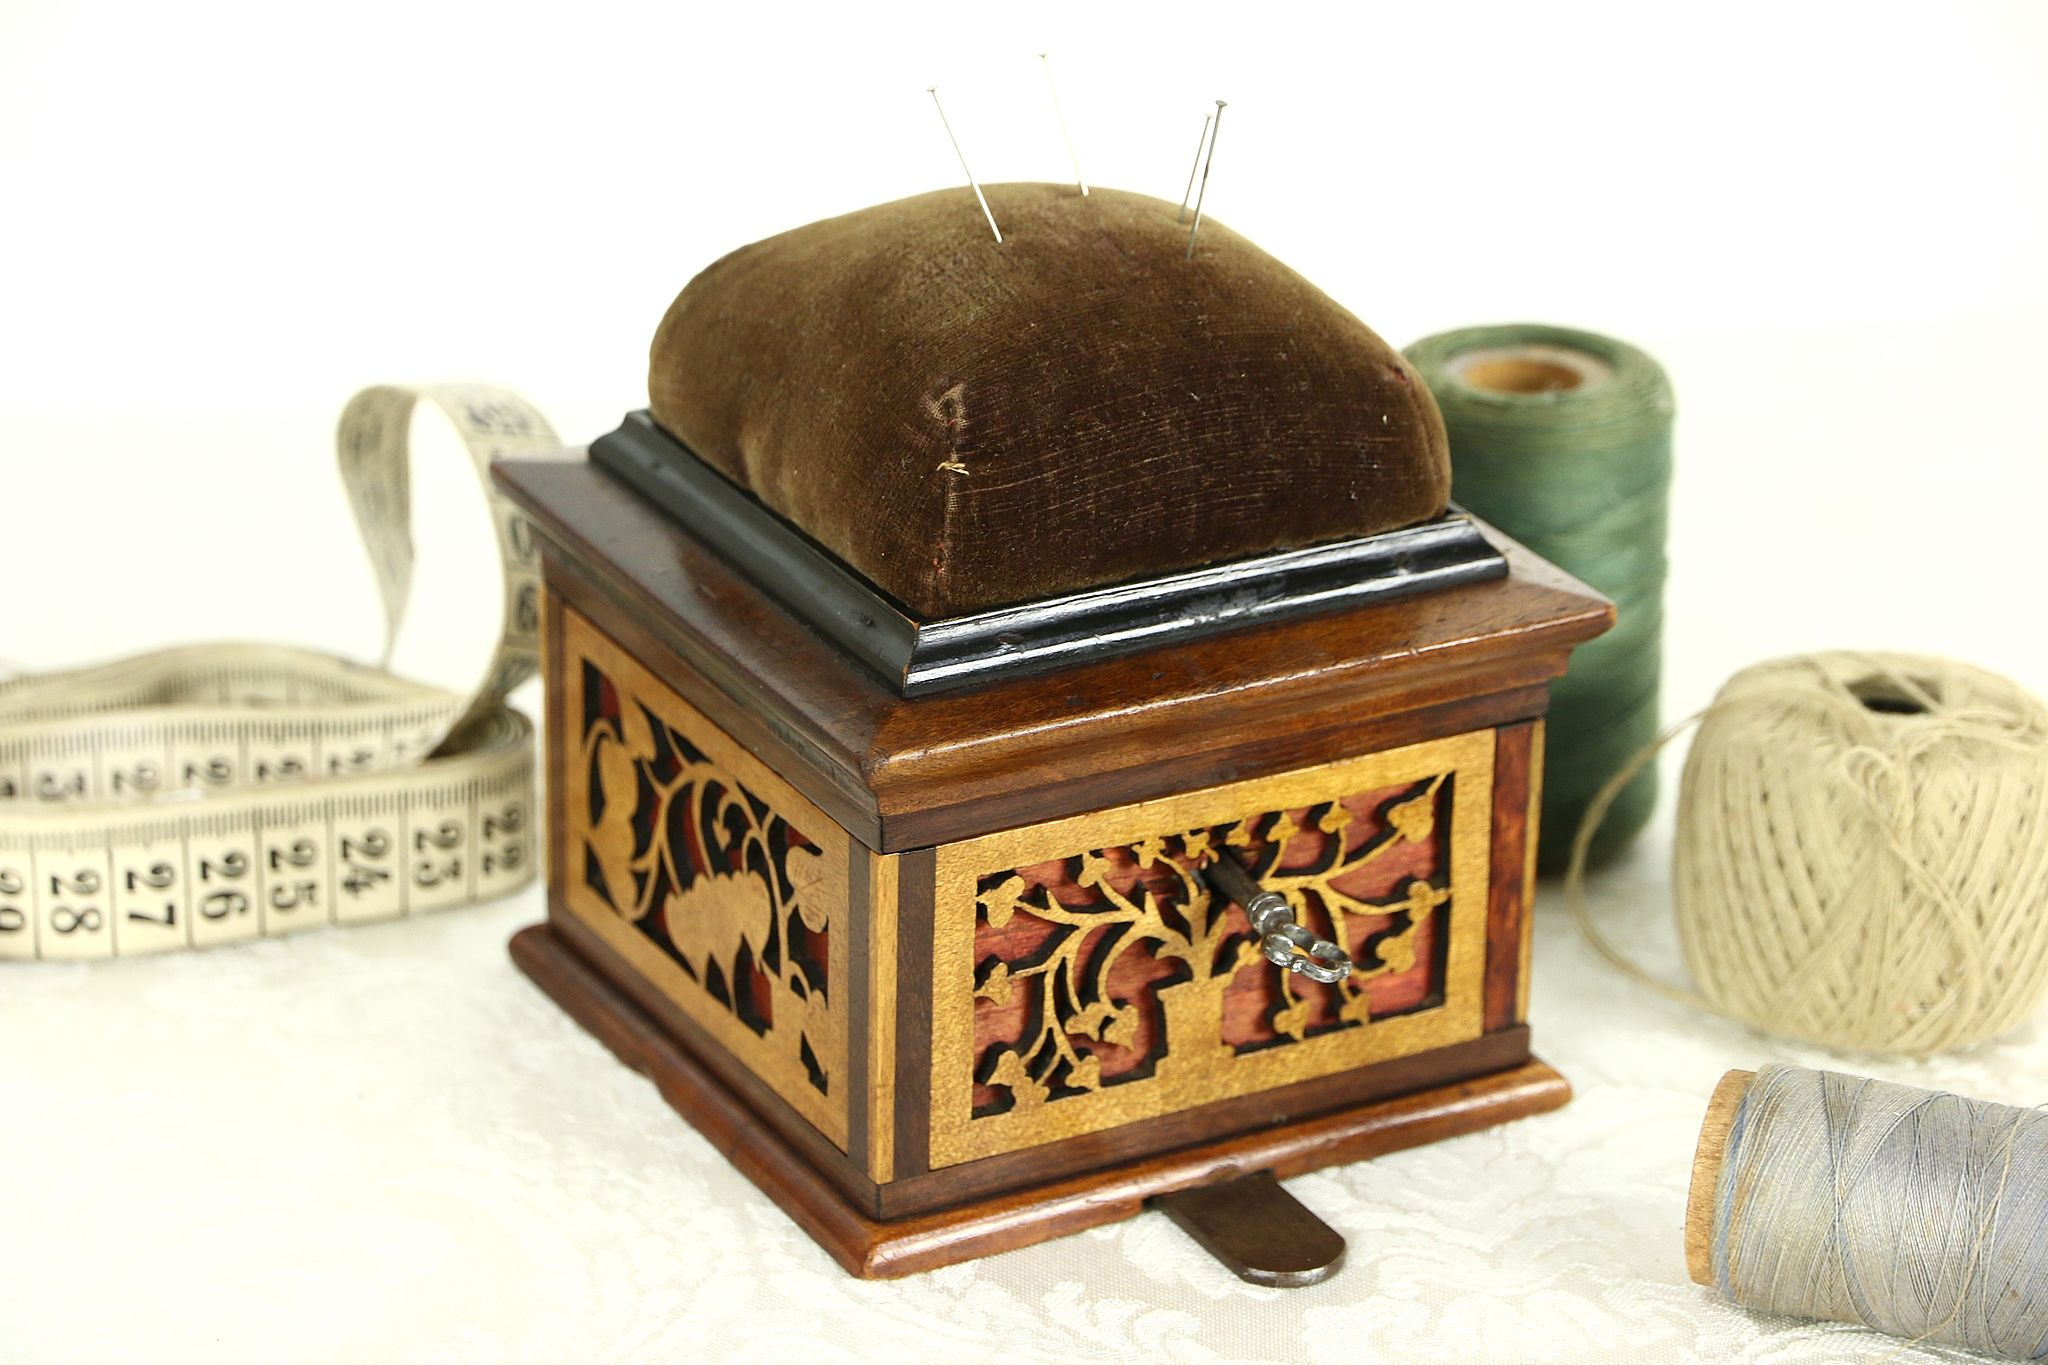 Victorian 1880u0027s Antique Jewelry Chest or Sewing Box Pin Cushion u0026 Key ...  sc 1 st  Harp Gallery & SOLD - Victorian 1880u0027s Antique Jewelry Chest or Sewing Box Pin ... Aboutintivar.Com